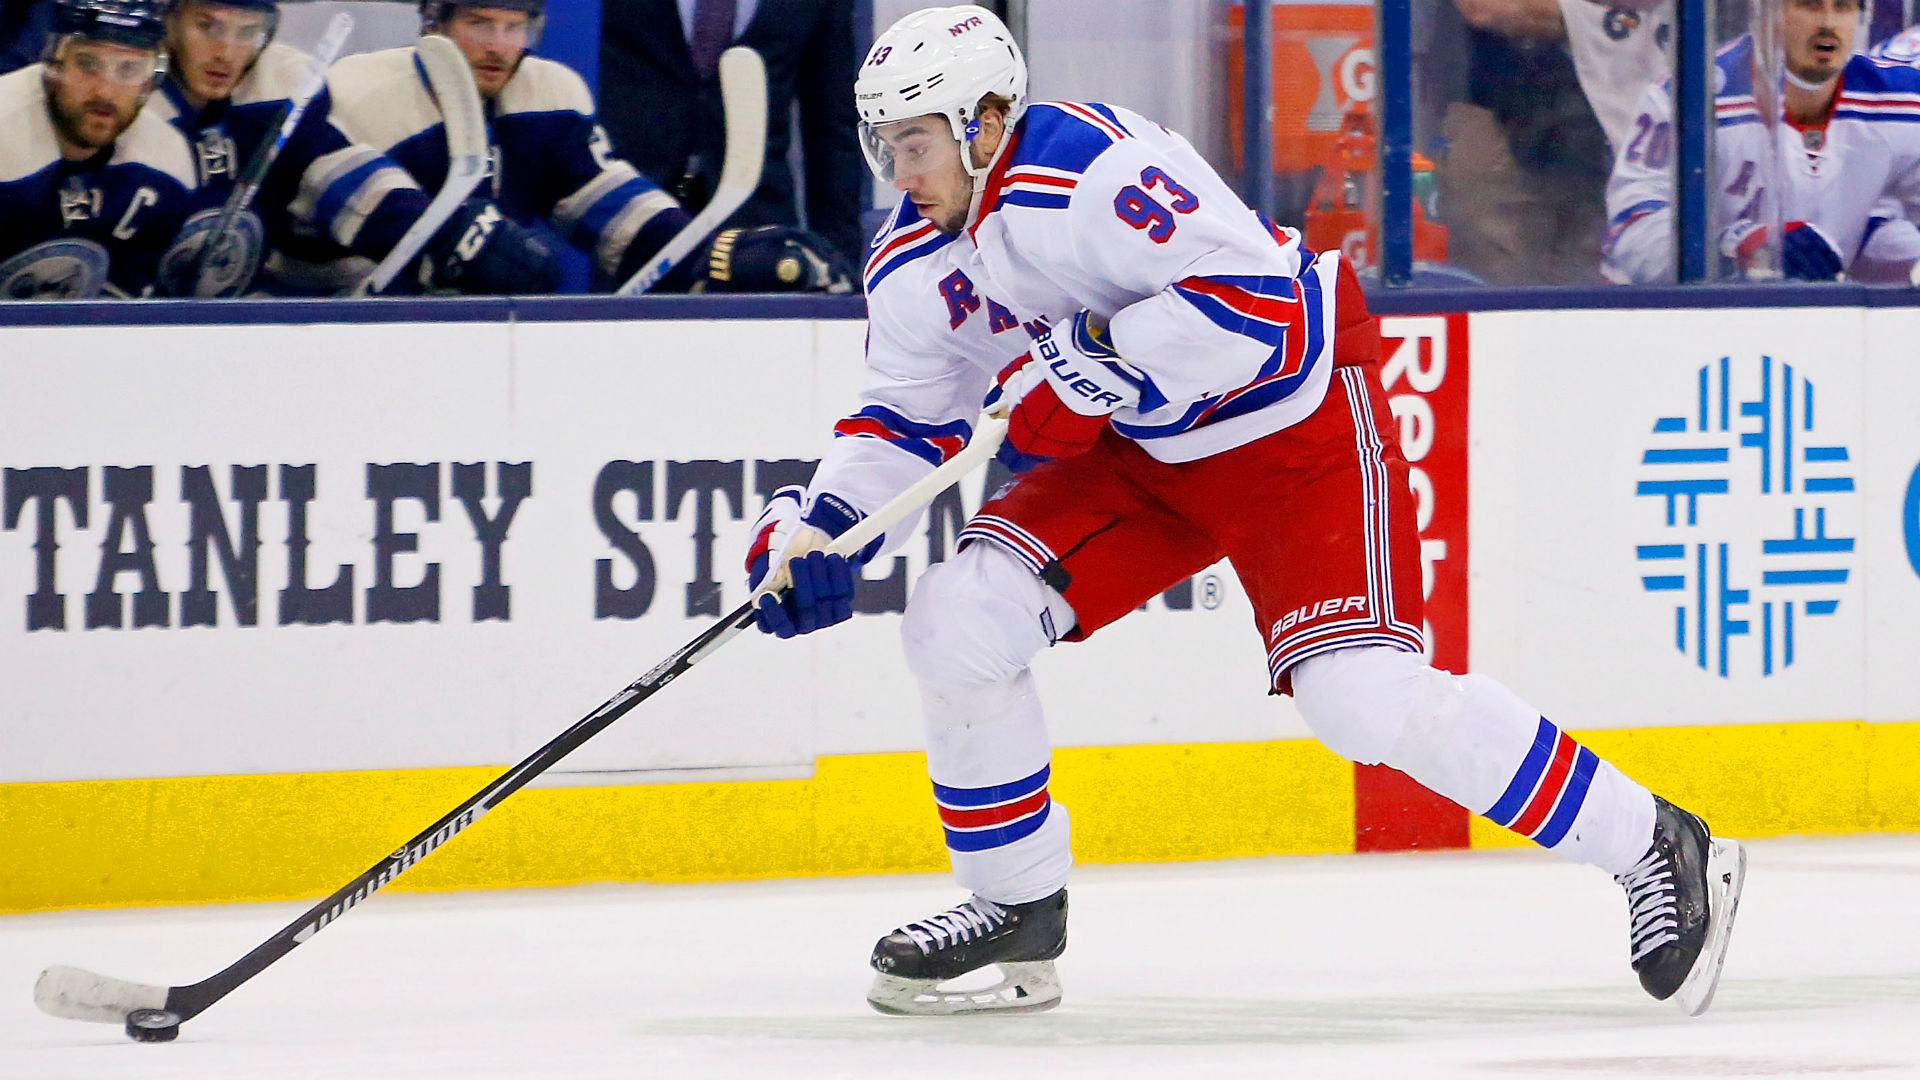 Rangers agree to terms with Mika Zibanejad